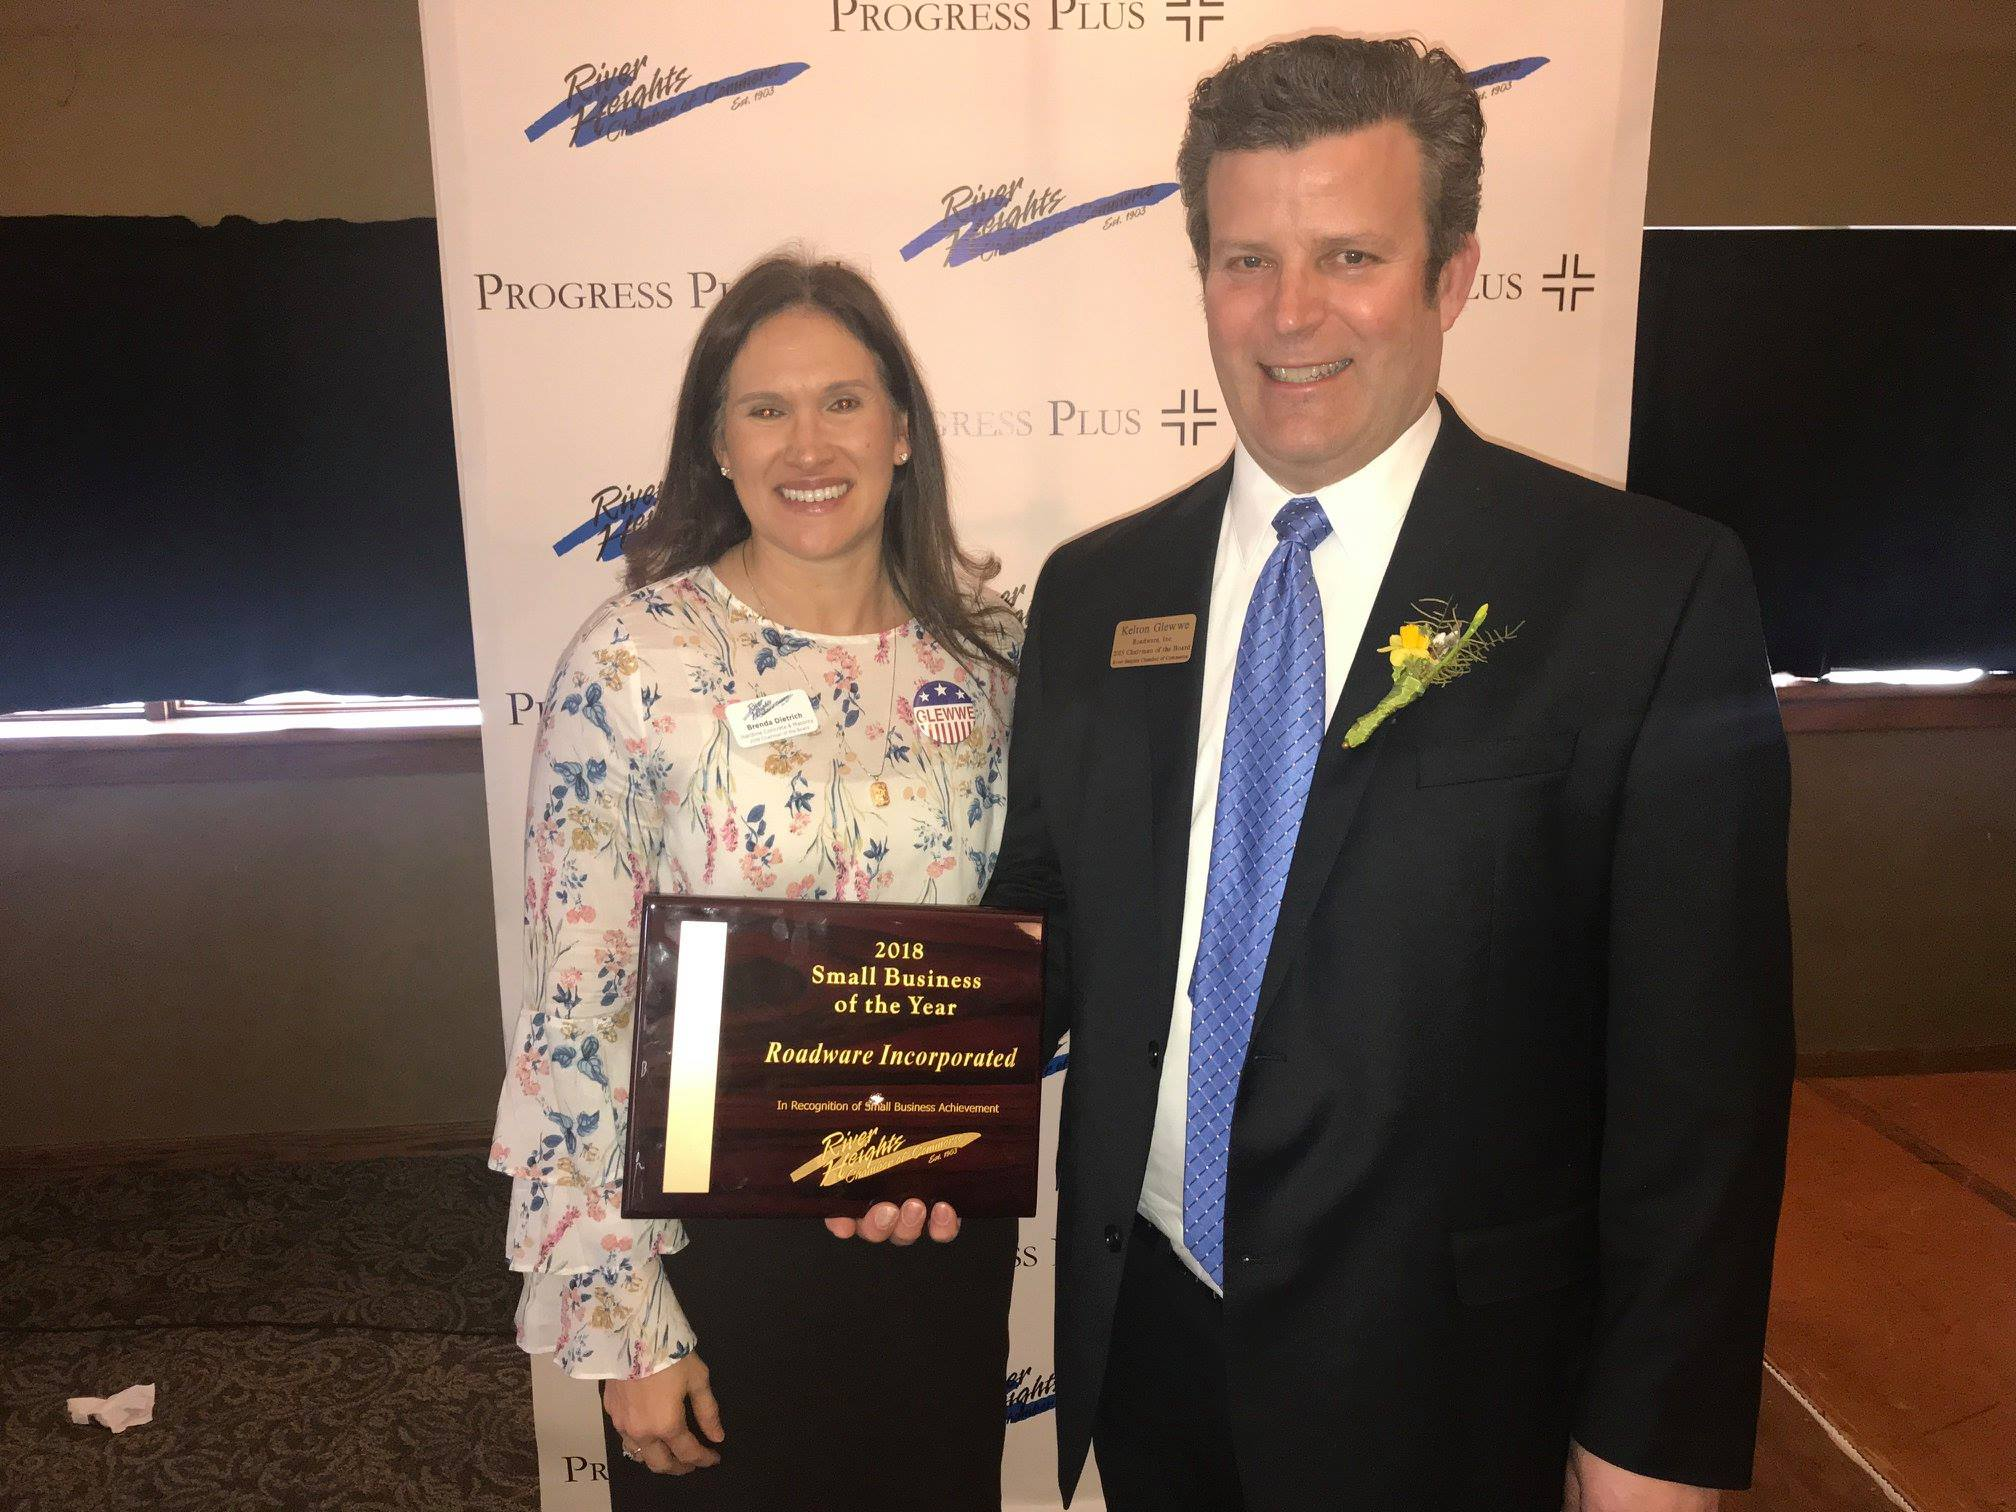 Roadware honored as the 2018 Small Business of the Year by the River Heights Chamber of Commerce.